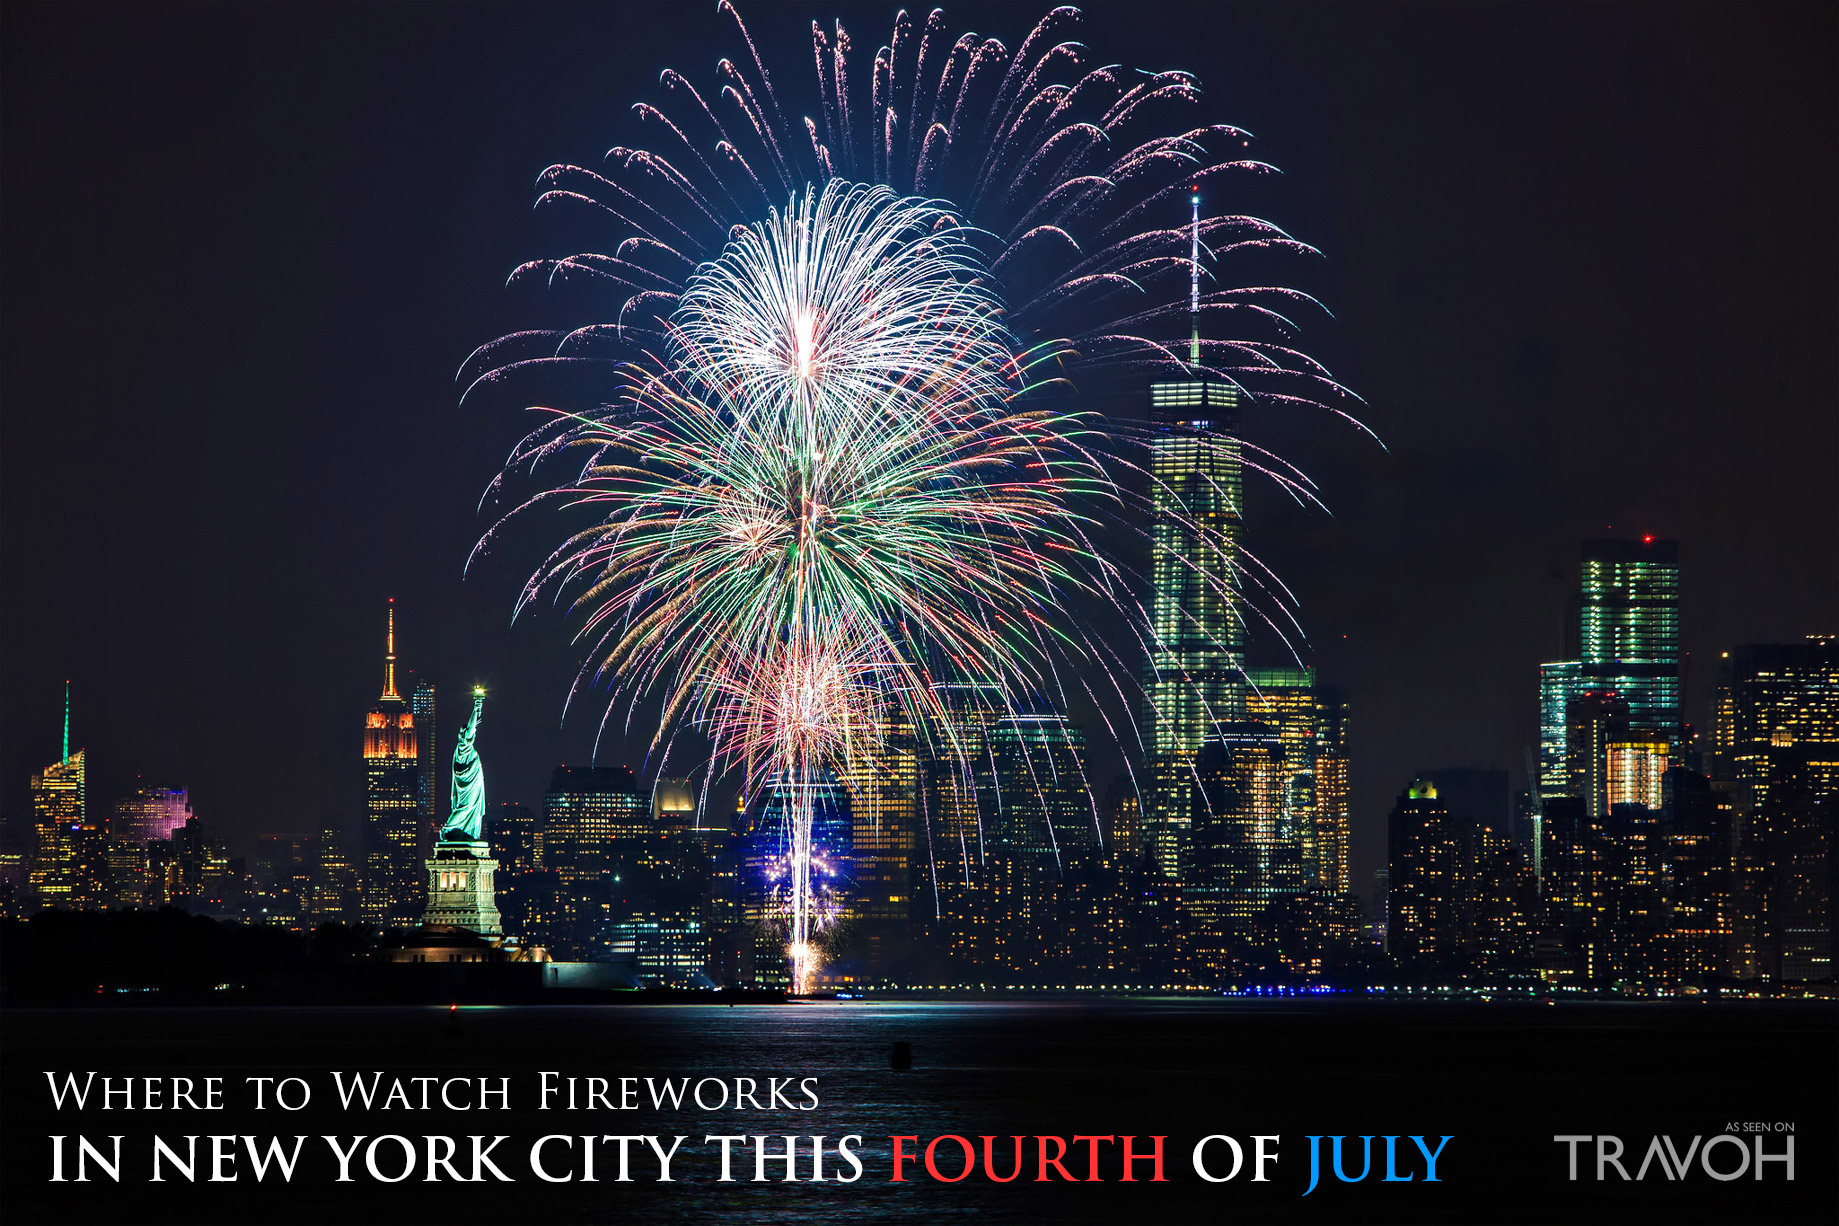 Where to Watch Fireworks in New York City this Fourth of July